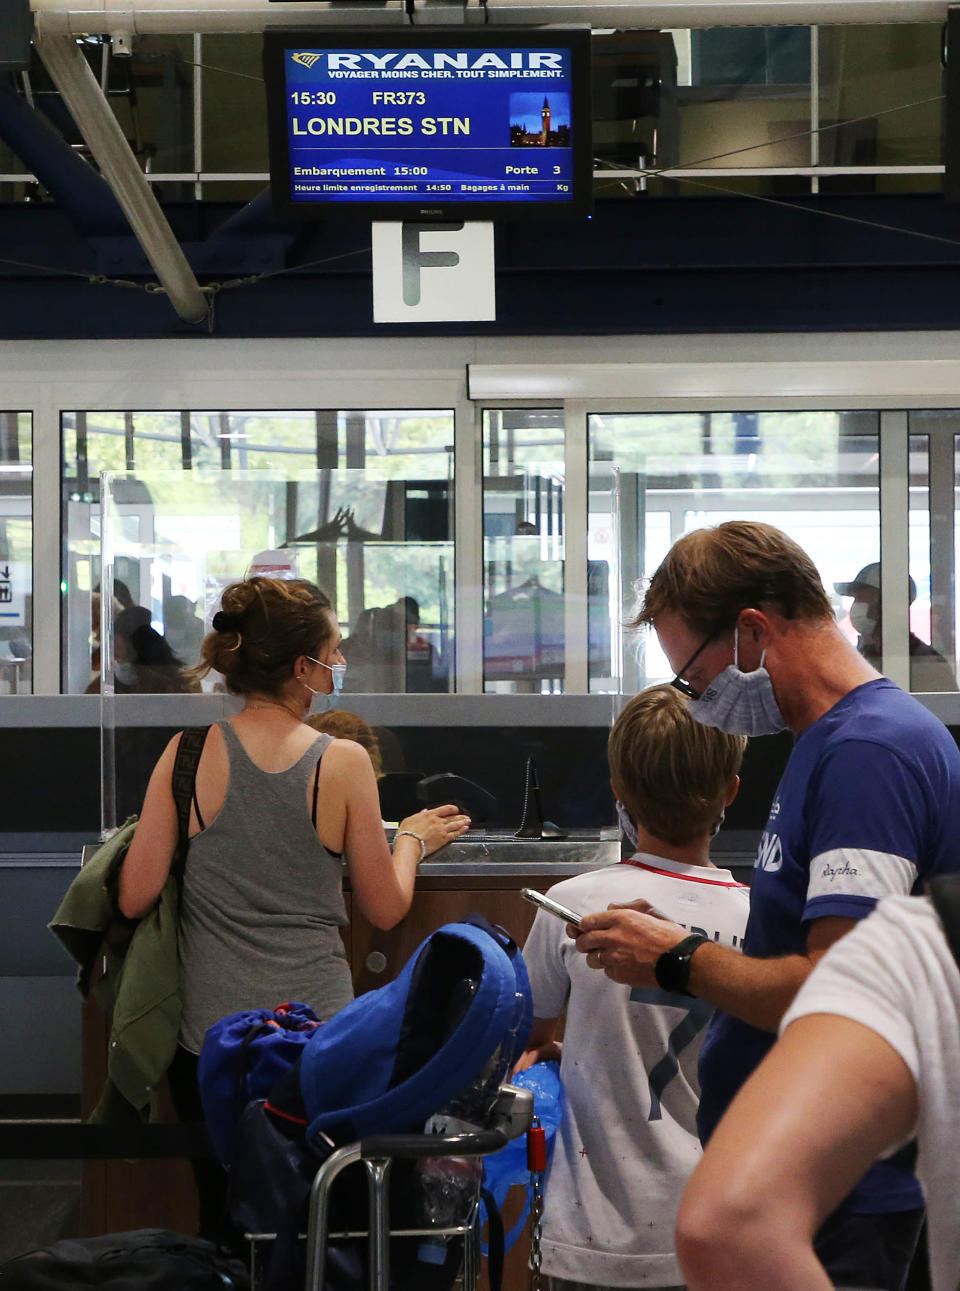 People check-in for a flight to London at the Biarritz airport, southwestern France, Friday Aug.14, 2020. British holidaymakers in France were mulling whether to return home early Friday to avoid having to self-isolate for 14 days following the U.K. government's decision to reimpose quarantine restrictions on France amid a recent pick-up in coronavirus infections. (AP Photo/Bob Edme)